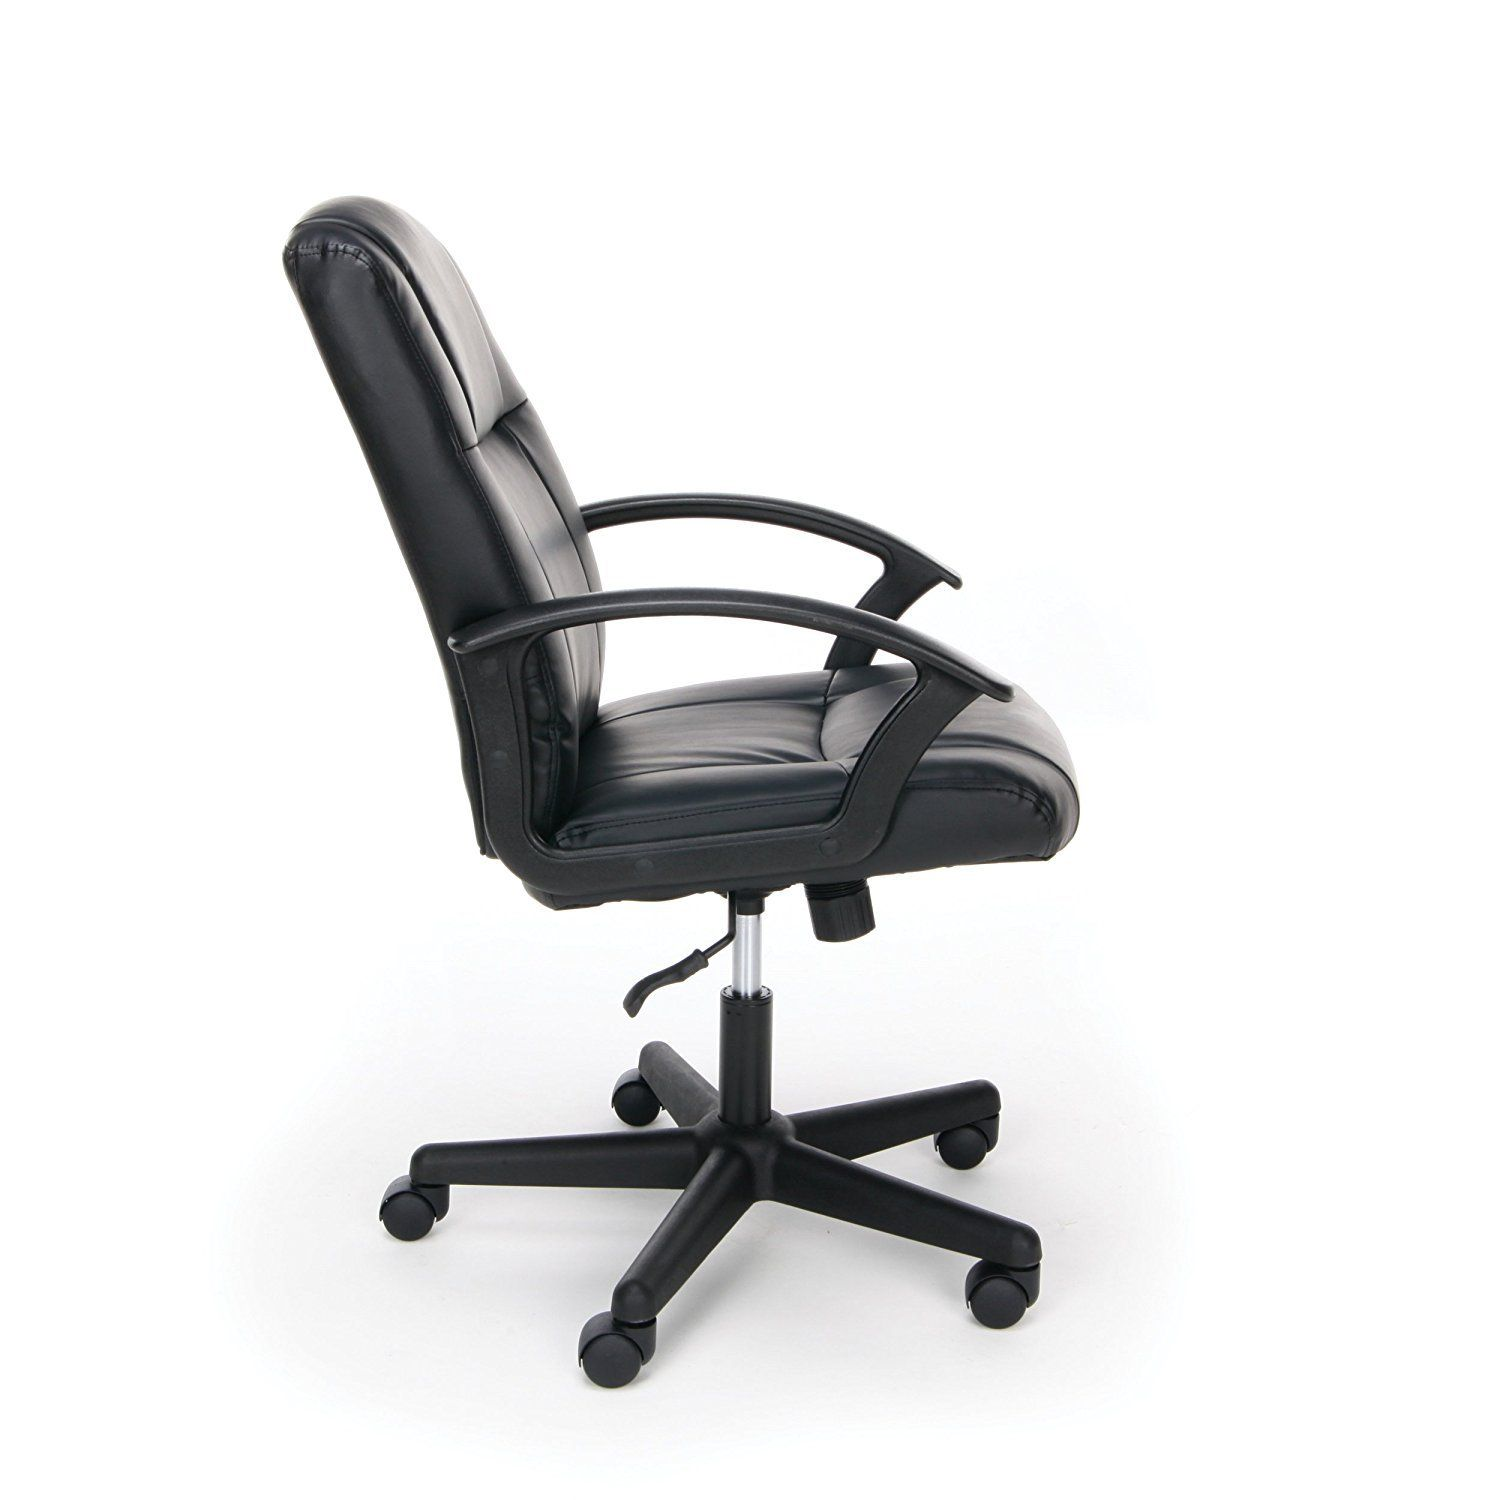 Home Best Offers Best Deals Sale Products Ineedthebestoffer Com Office Chair Computer Chair Ergonomic Chair